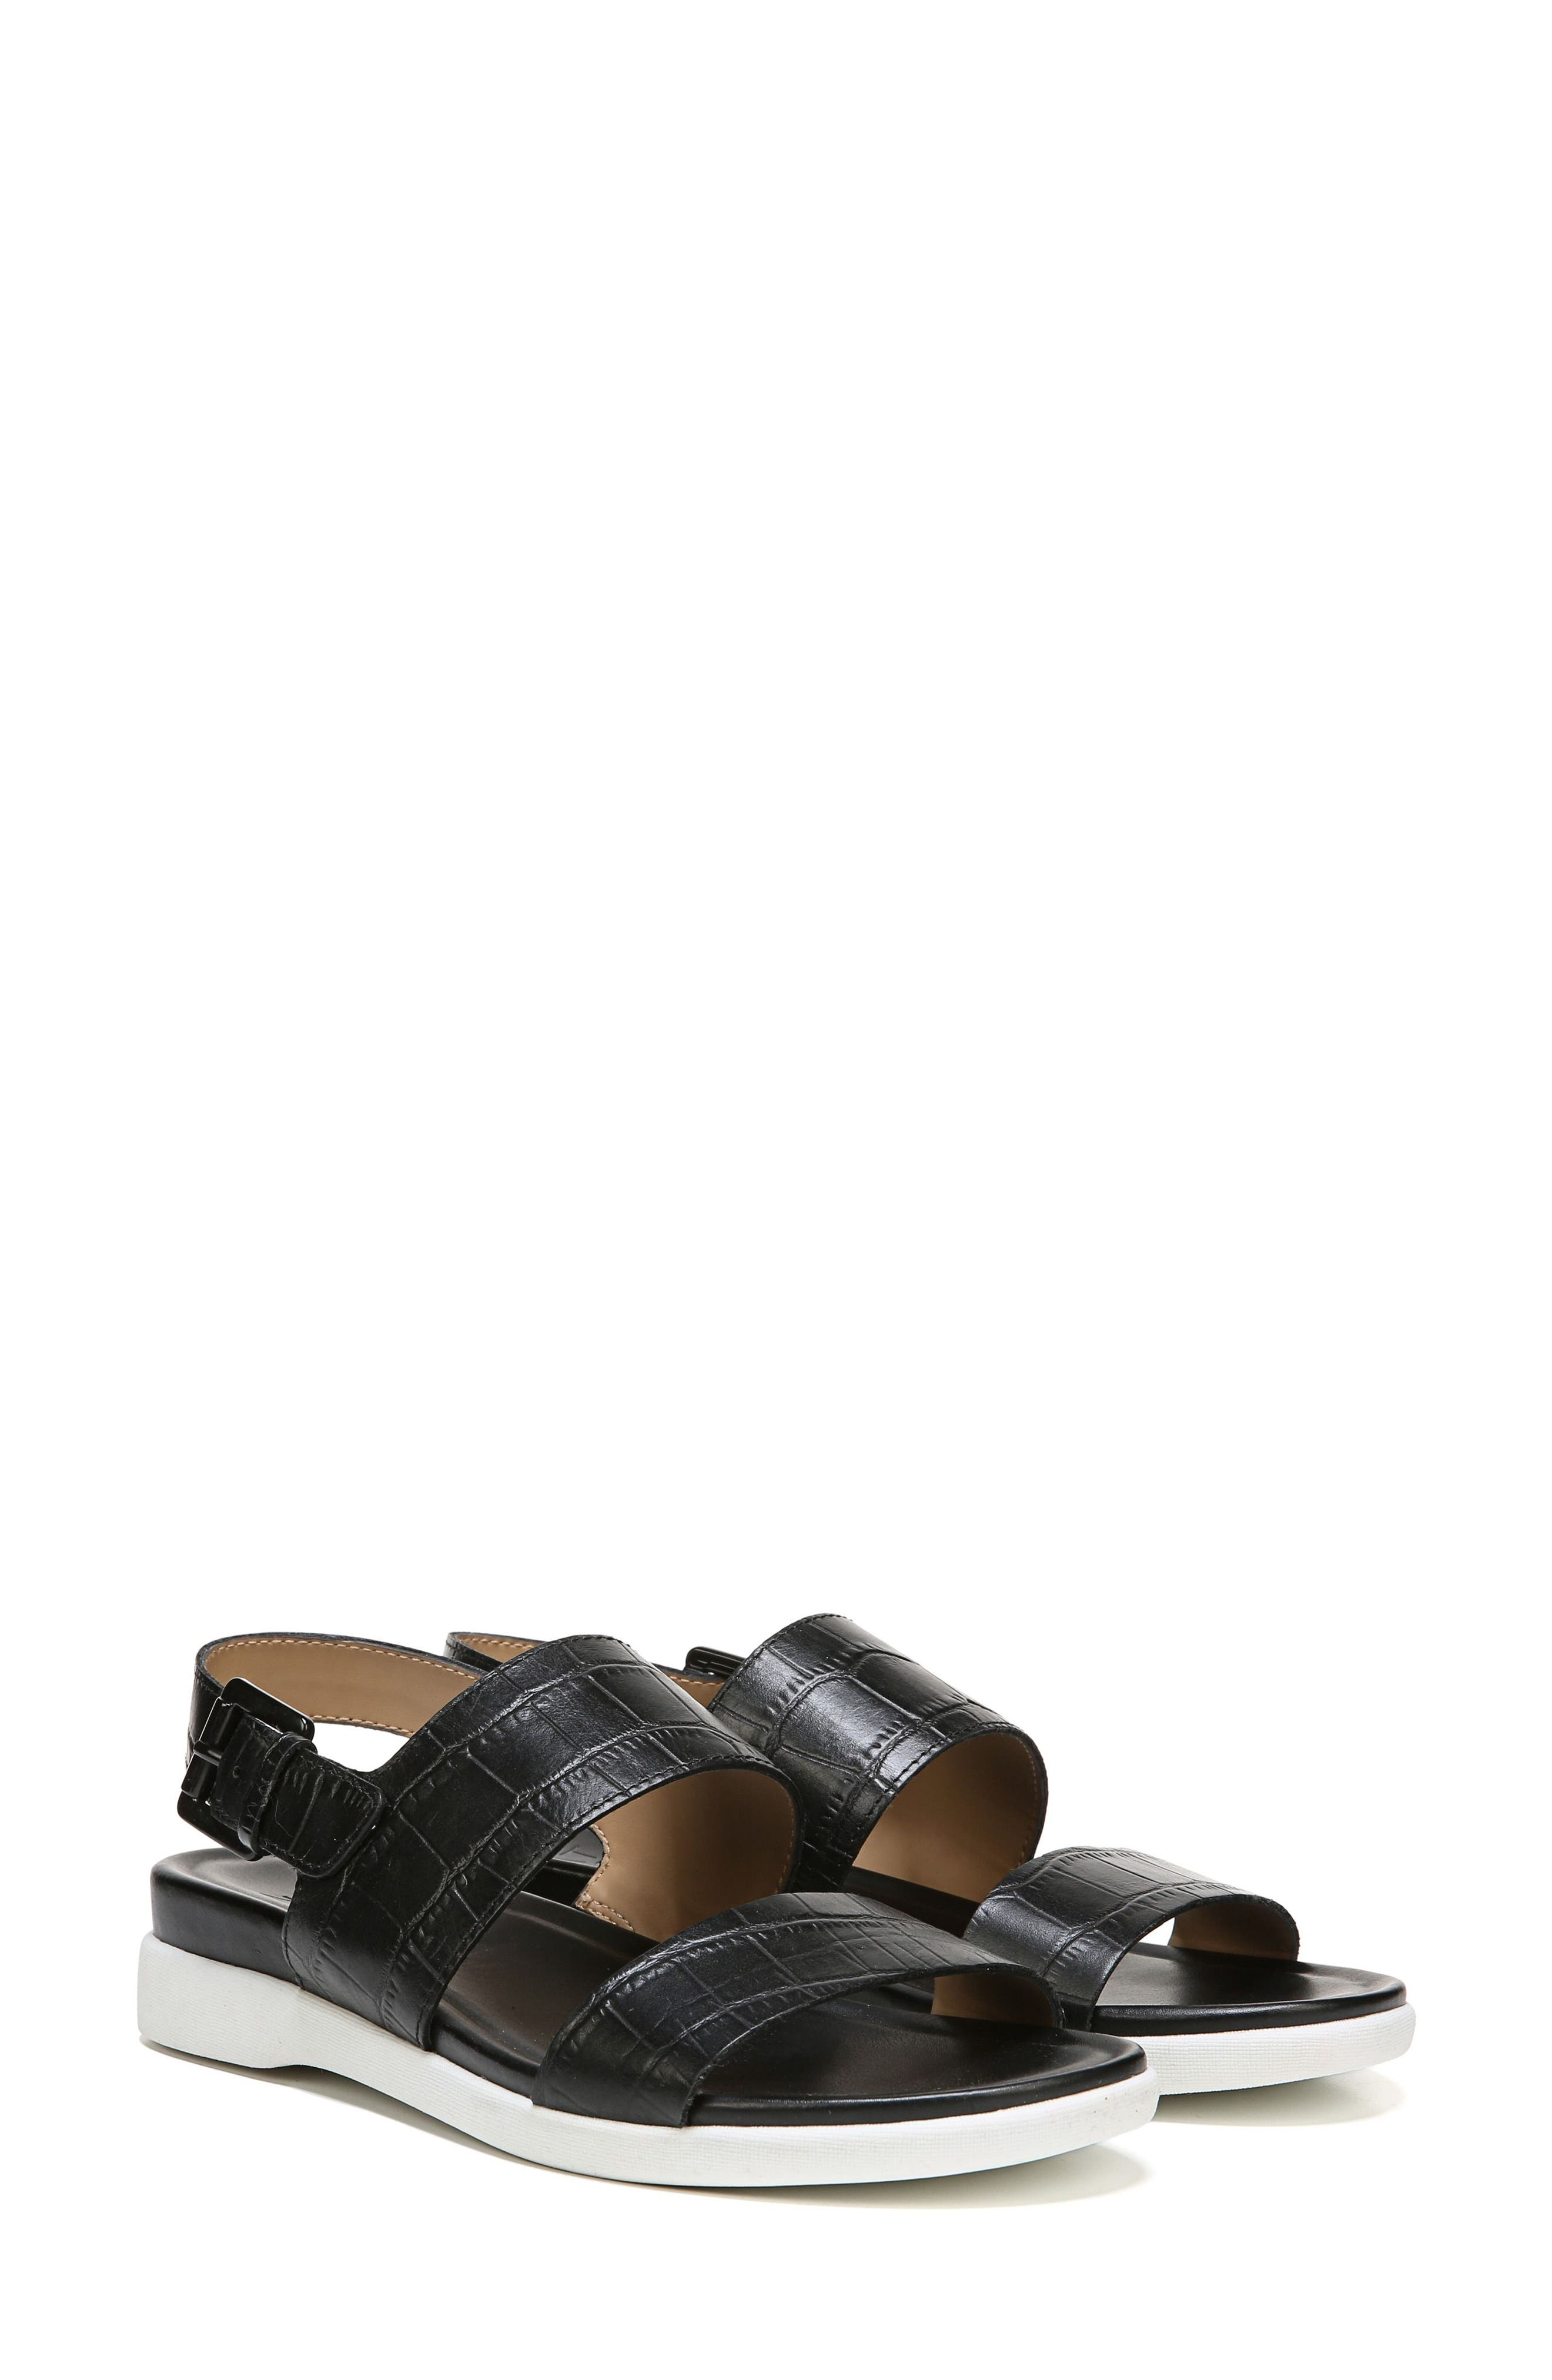 Emory Wedge Sandal,                             Alternate thumbnail 8, color,                             BLACK PRINTED LEATHER